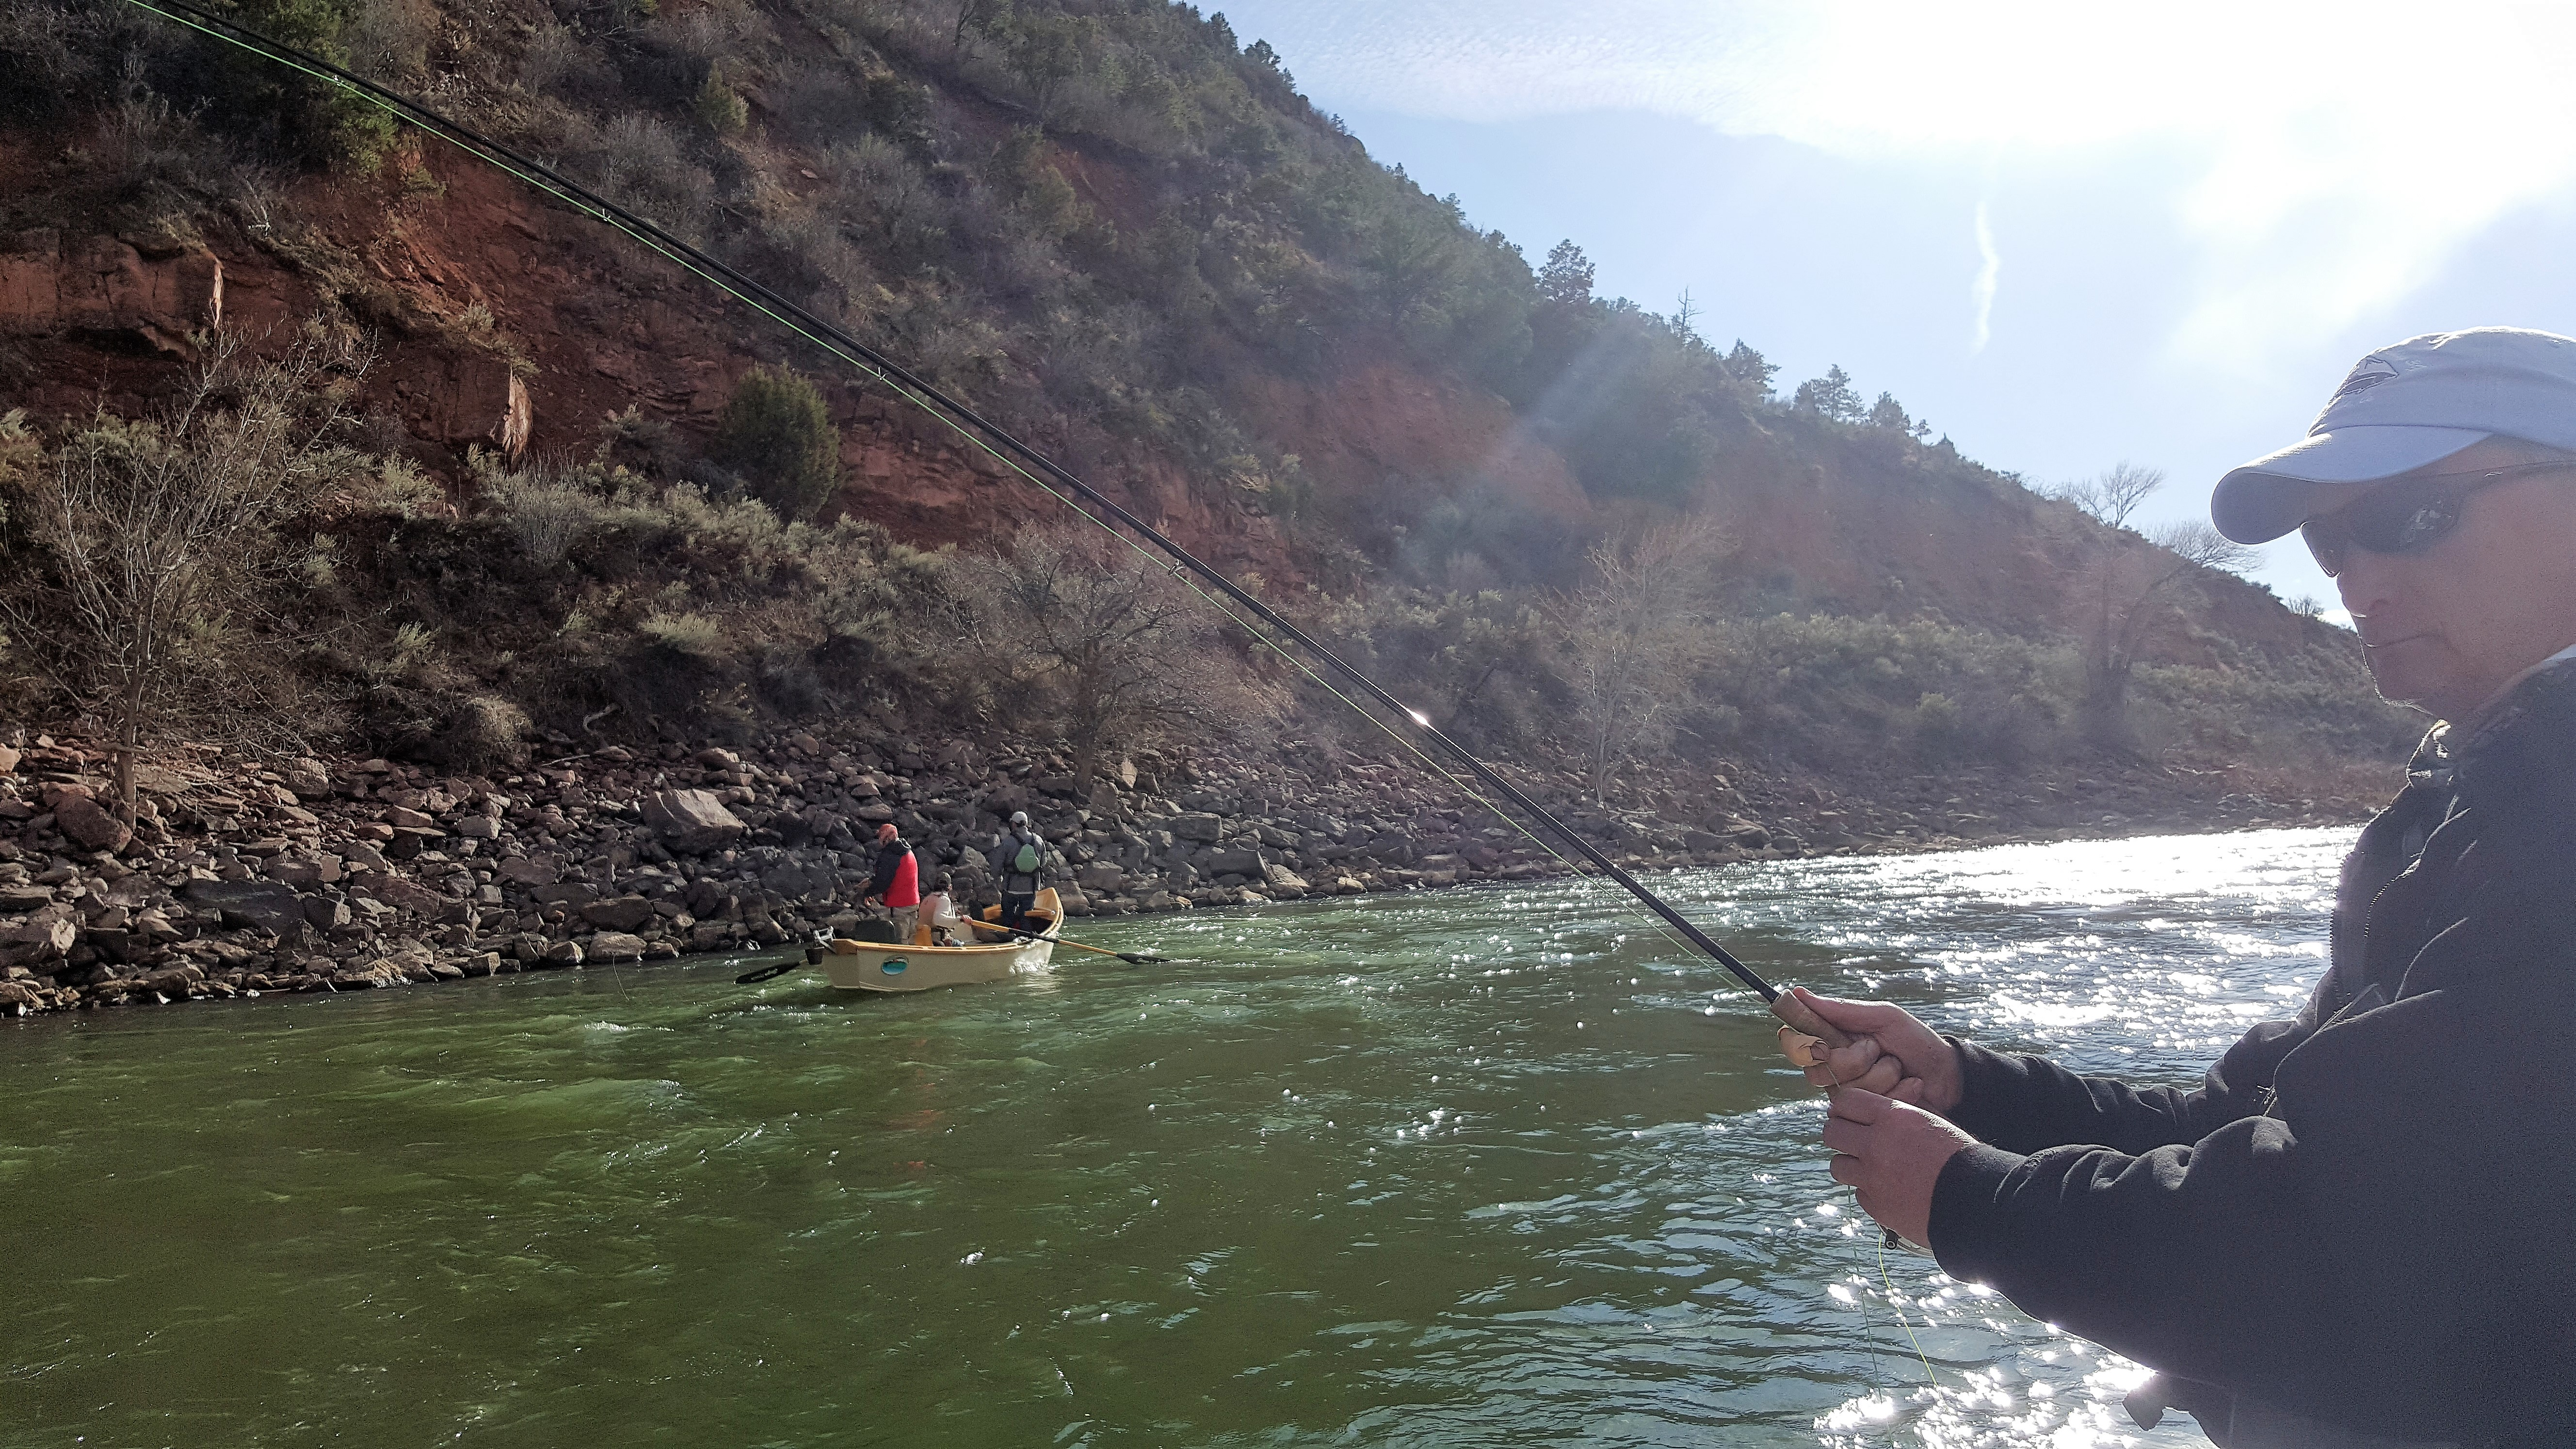 20160401 171209 harcourt fly fishing for Fly fishing classes near me